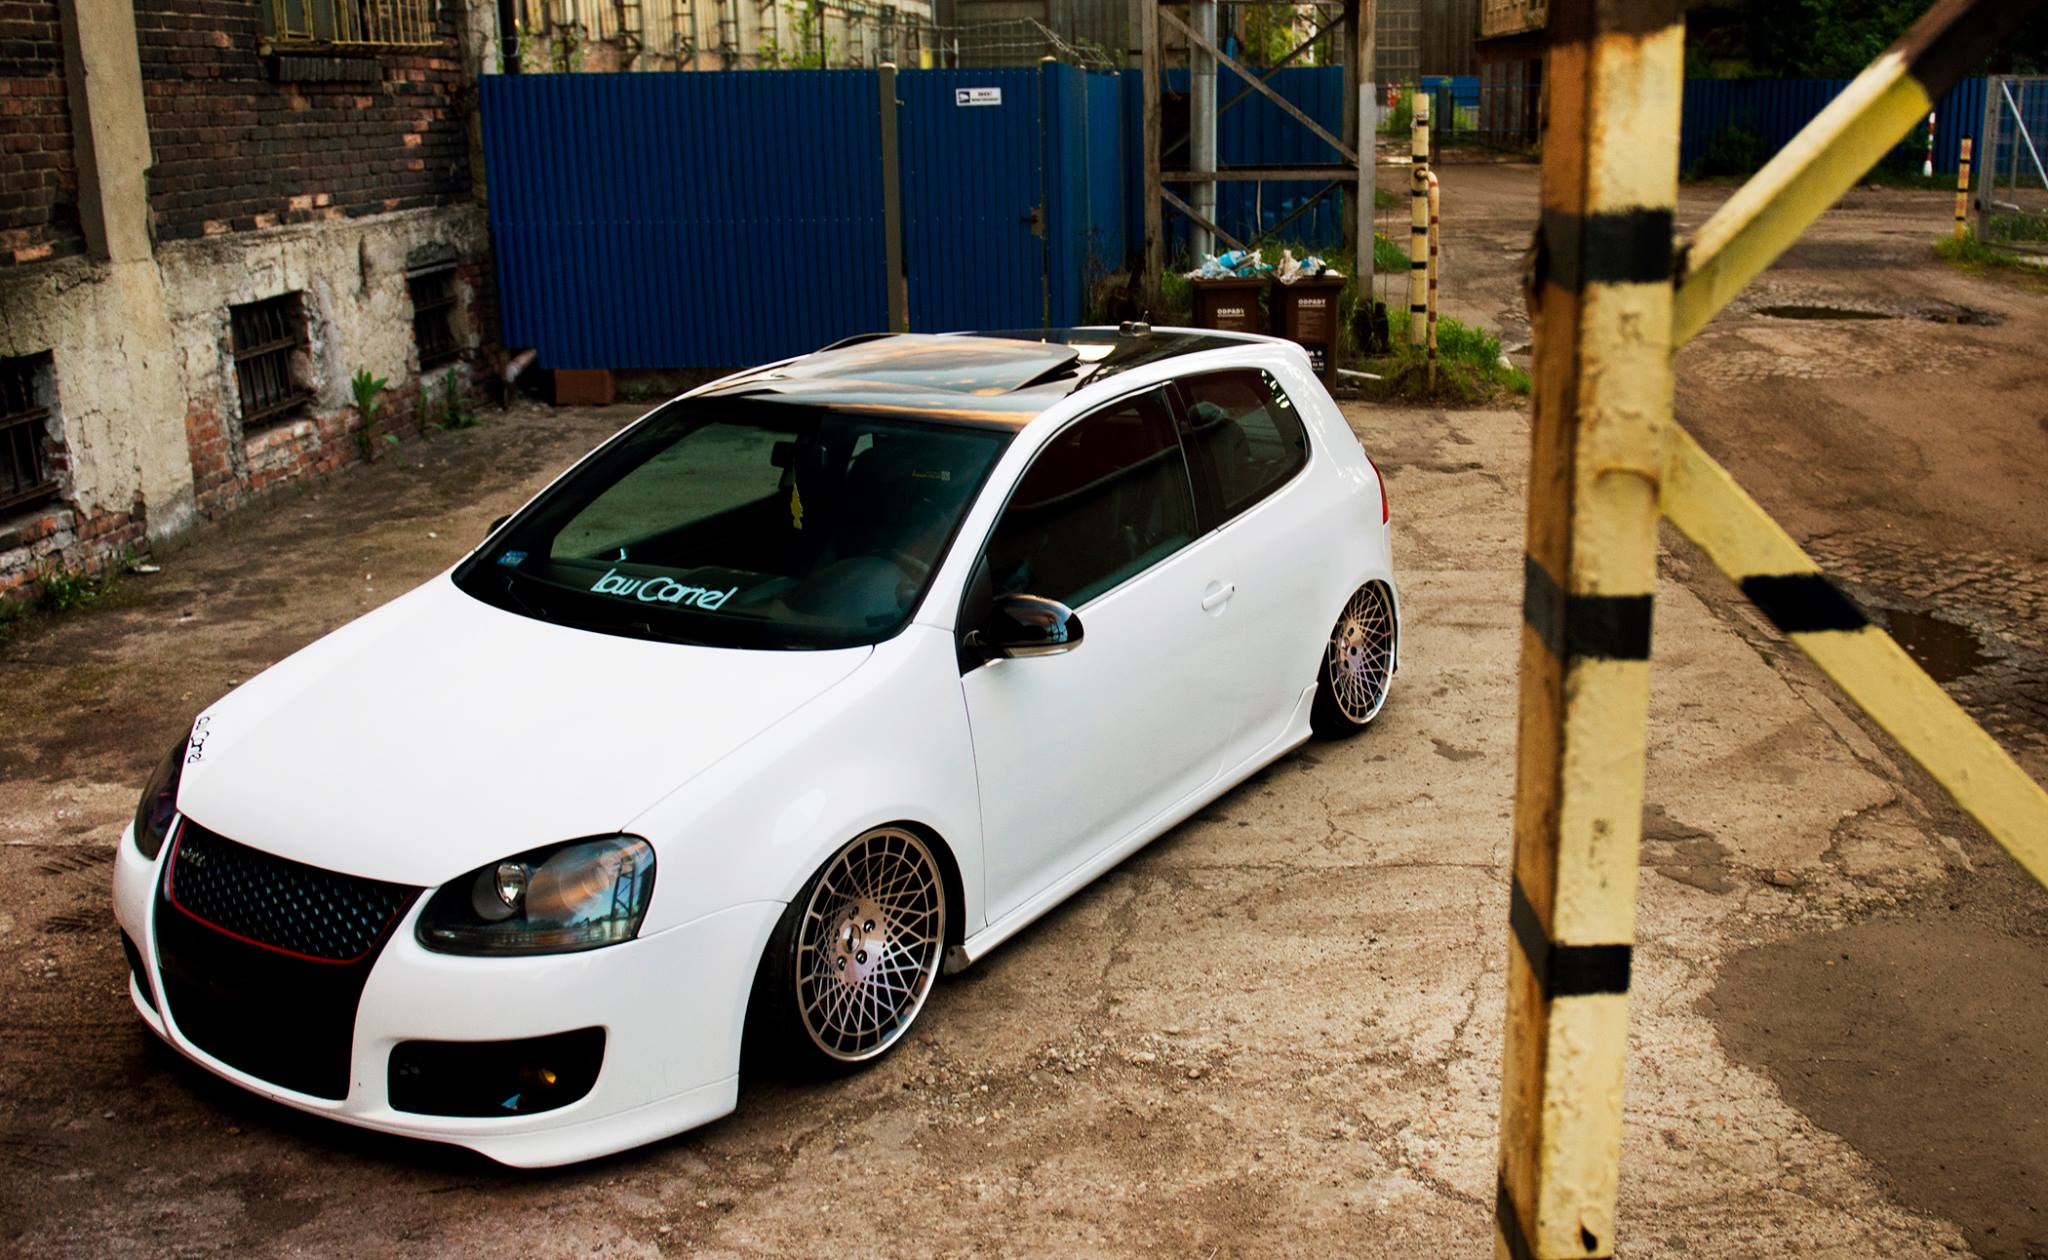 Bmw Bolt Pattern >> JR WHEELS JR-14 15″ | JDMDistro - Buy JDM Parts Online ...